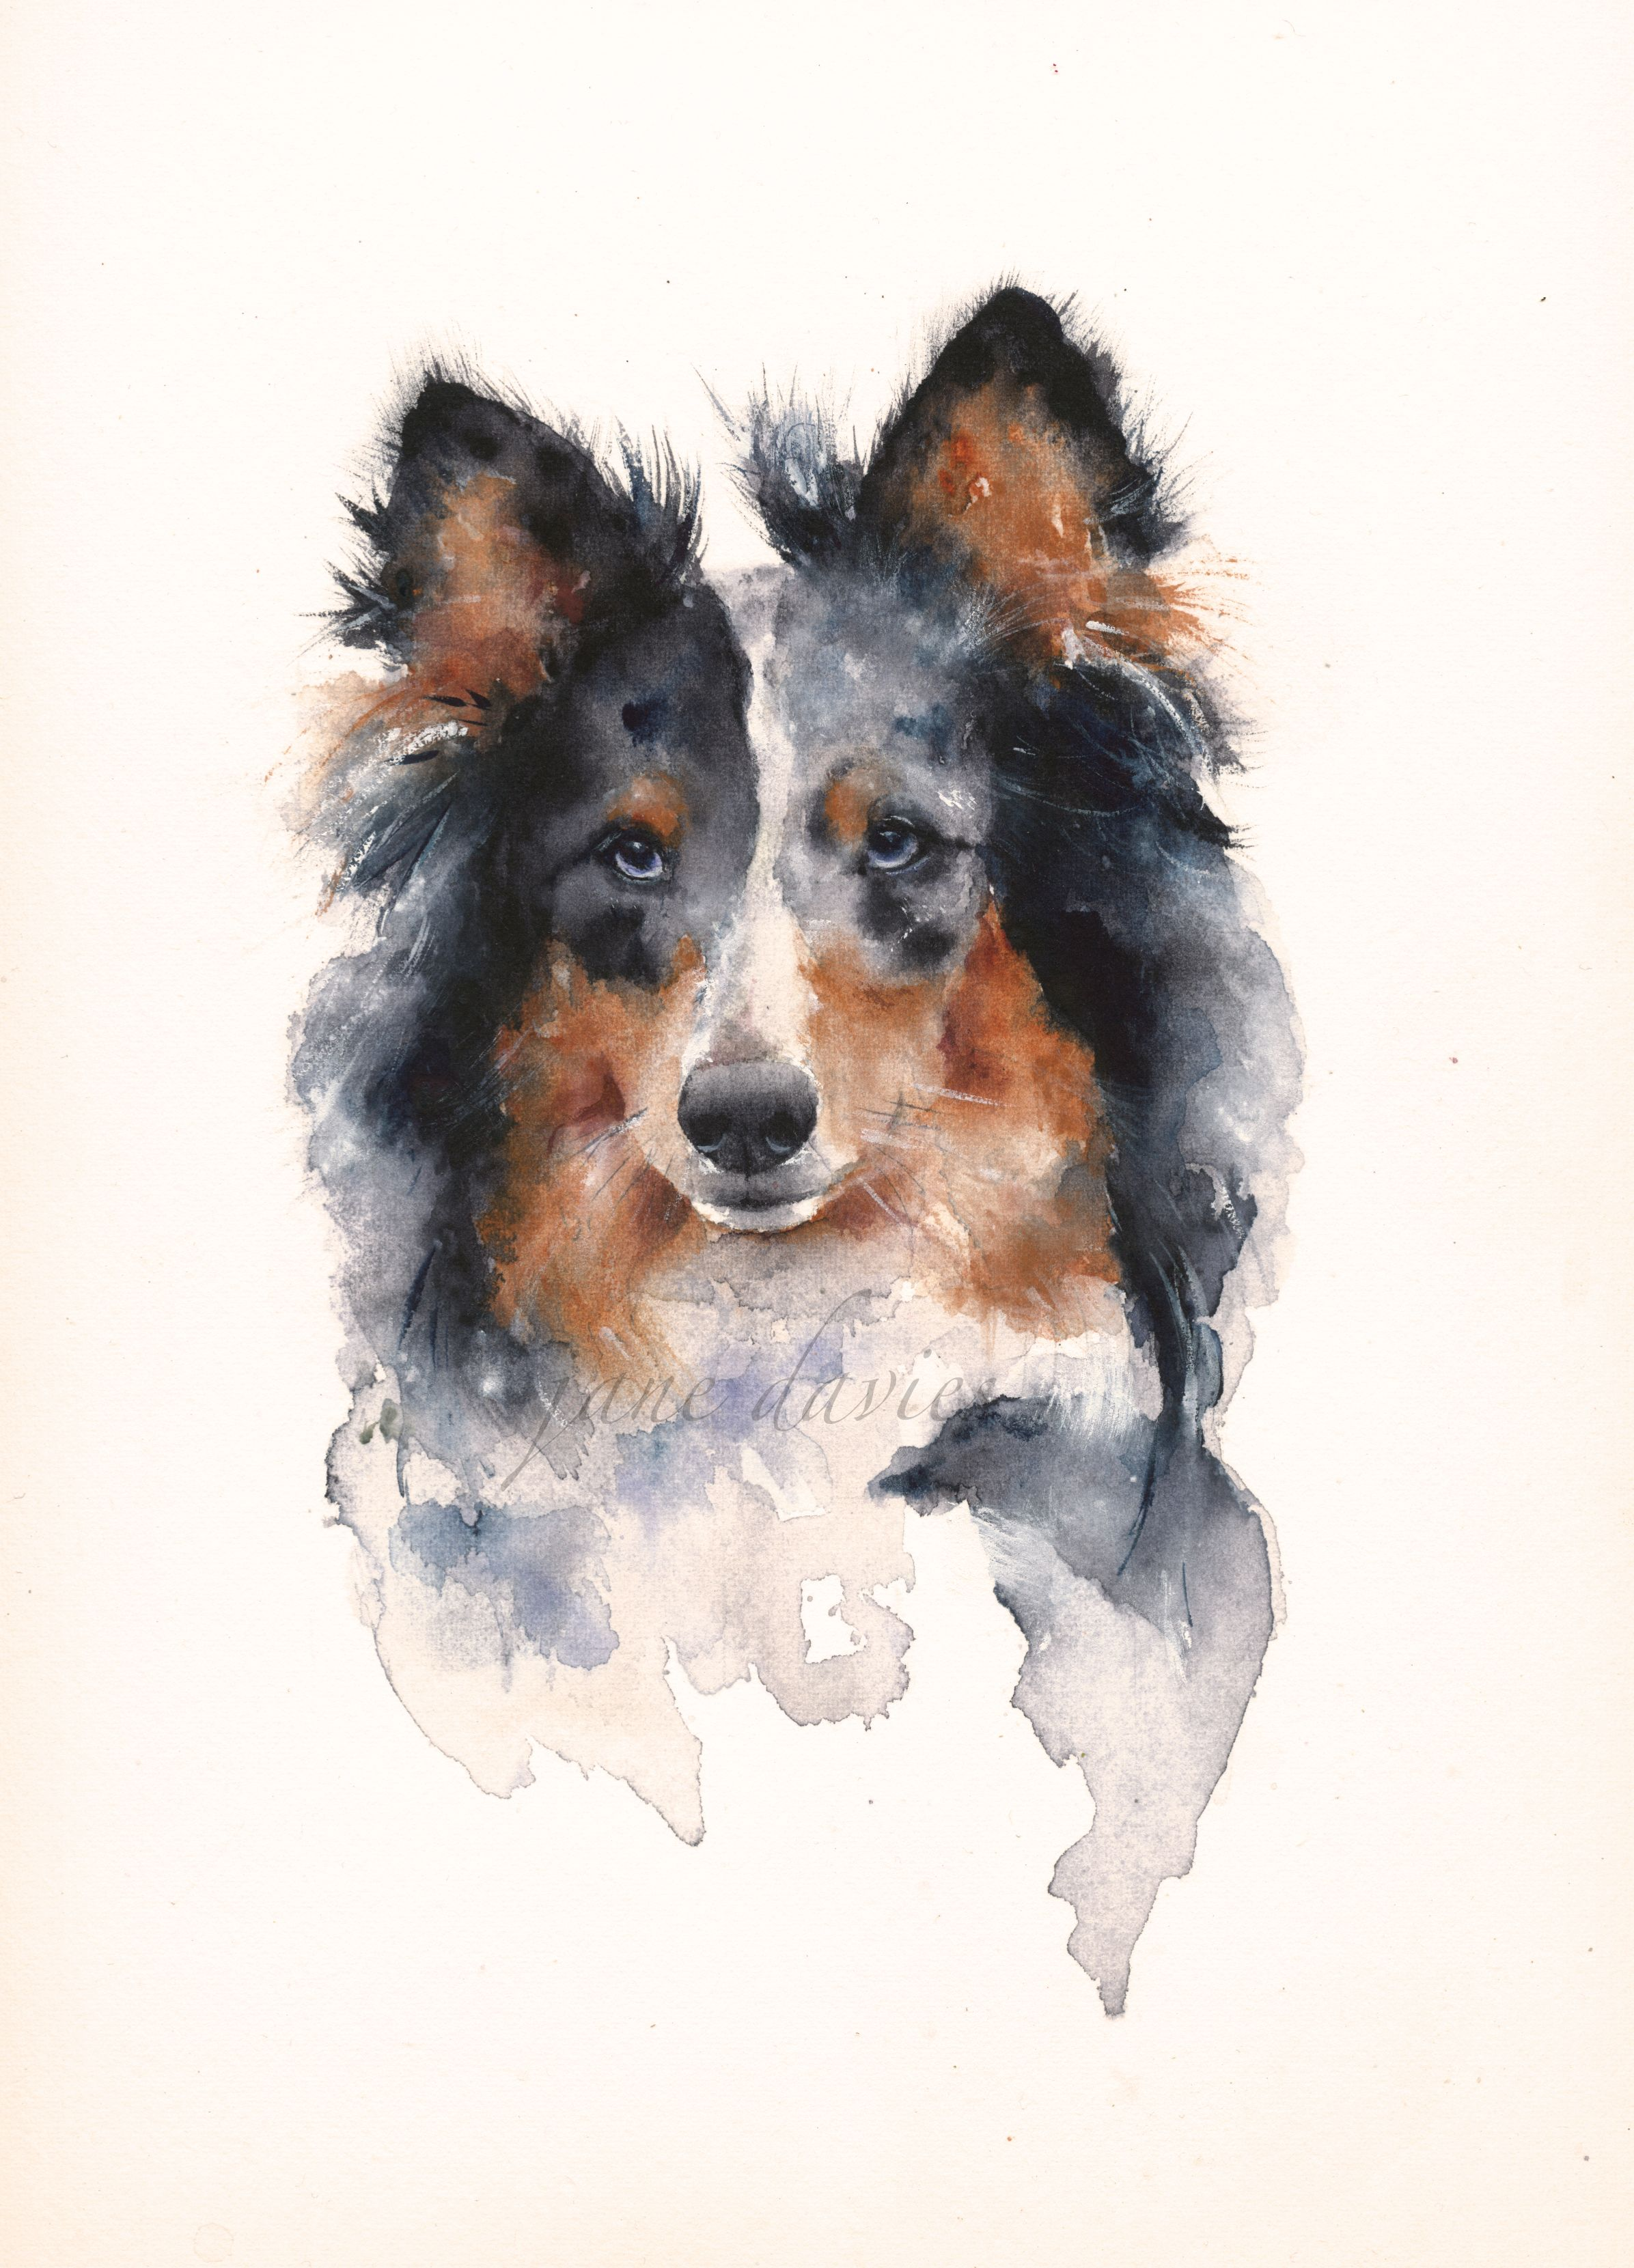 Pet Portrait In Watercolour Of A Sheltie Dog Painted By Artist